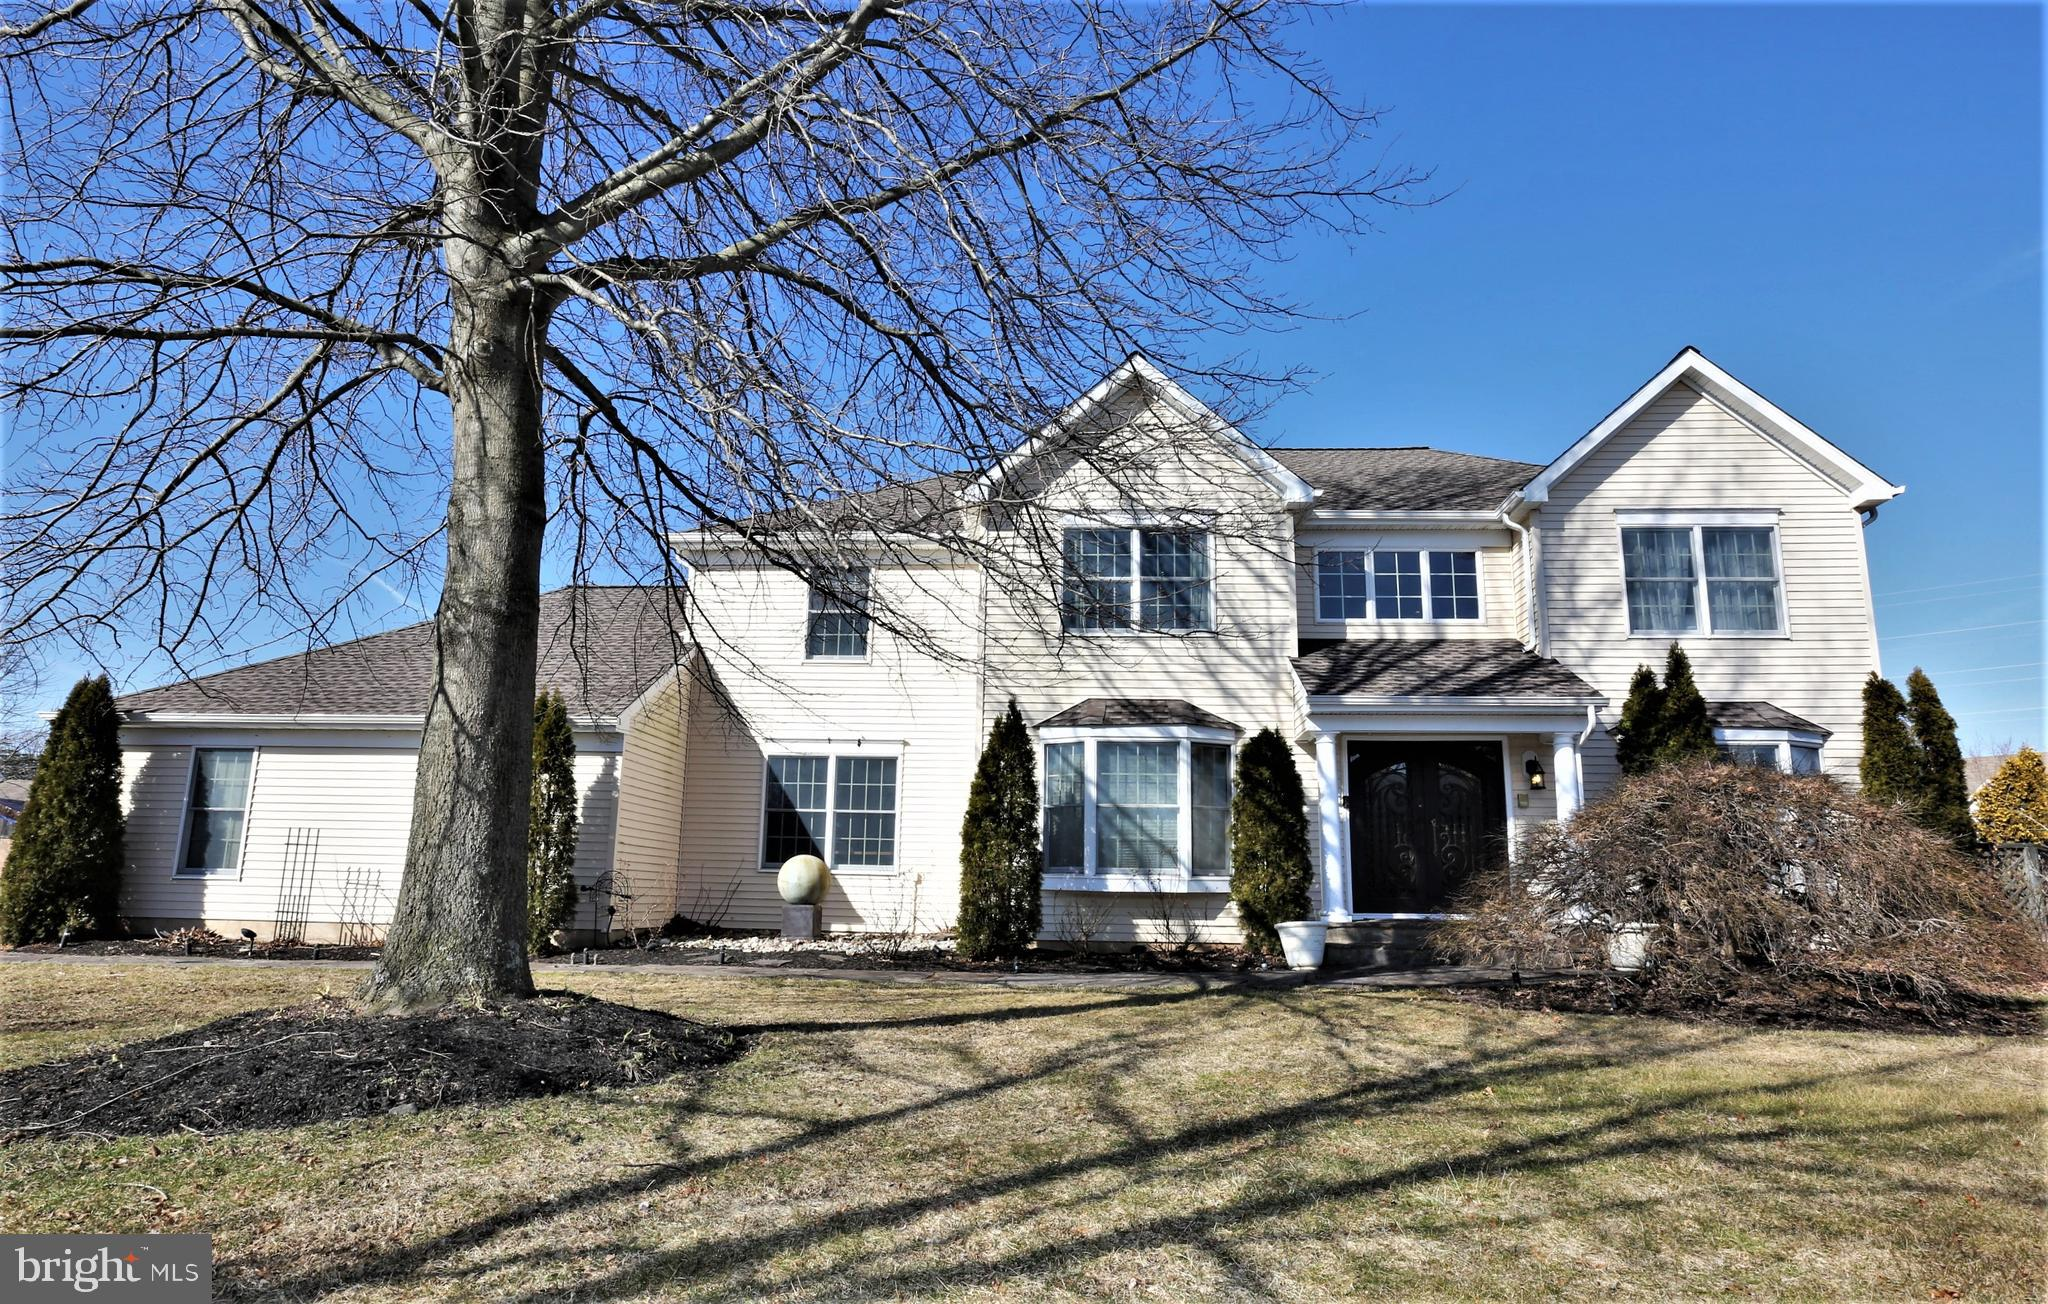 2 ENFIELD CIRCLE, PRINCETON JUNCTION, NJ 08550